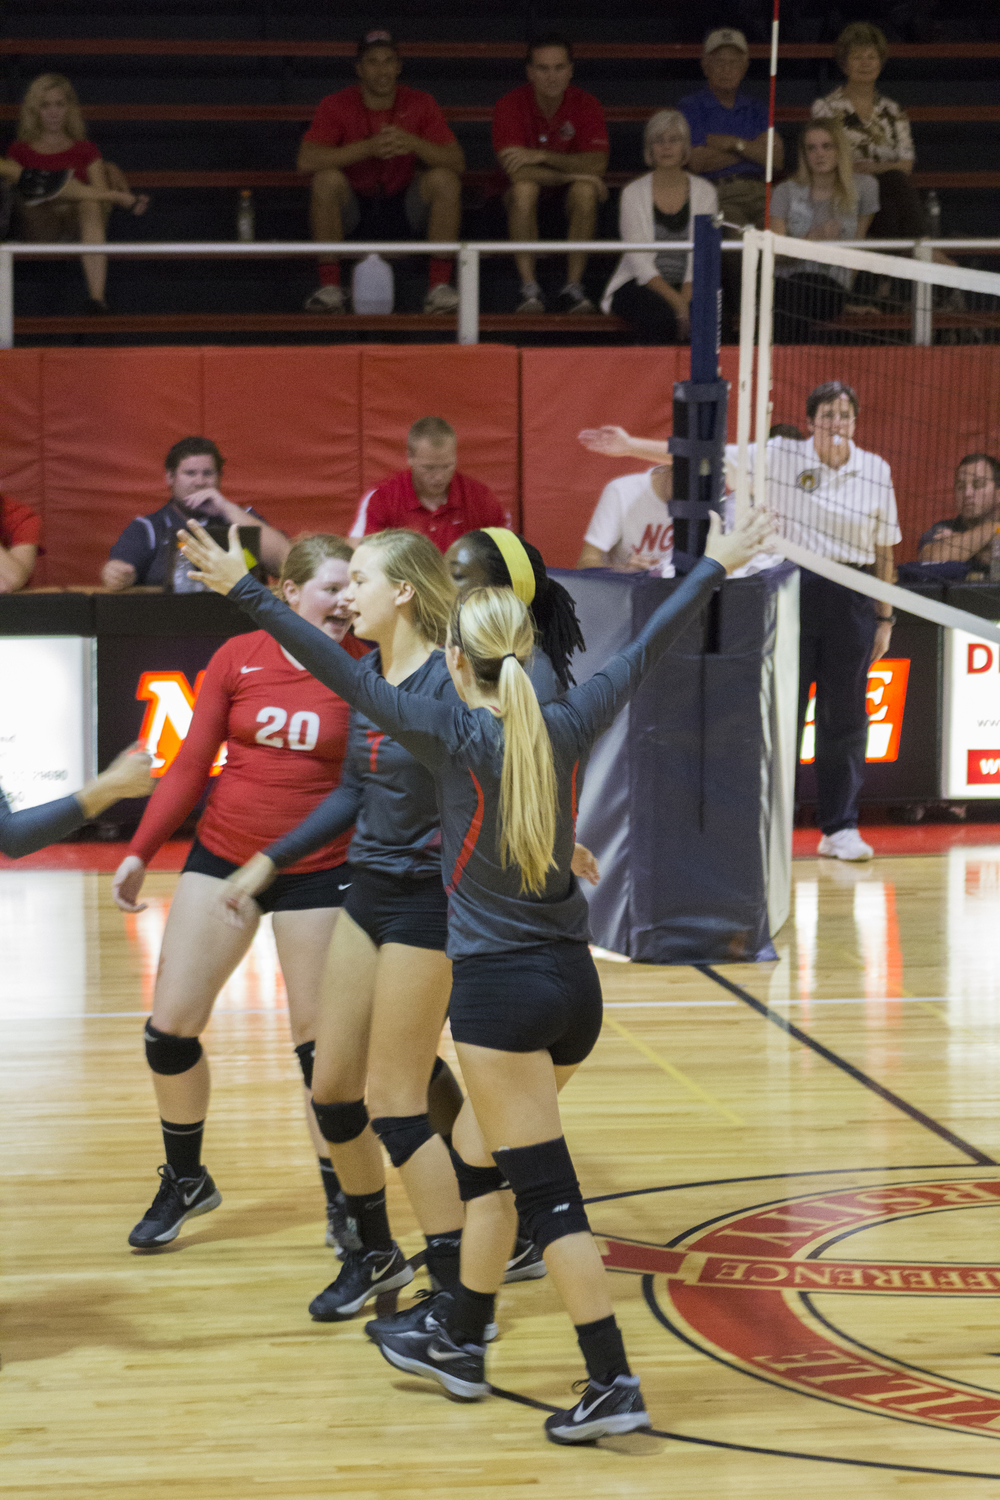 Junior Taylor Dupes, sophomore Haley Hester and junior Hannah Lewis celebrate after winning a point.